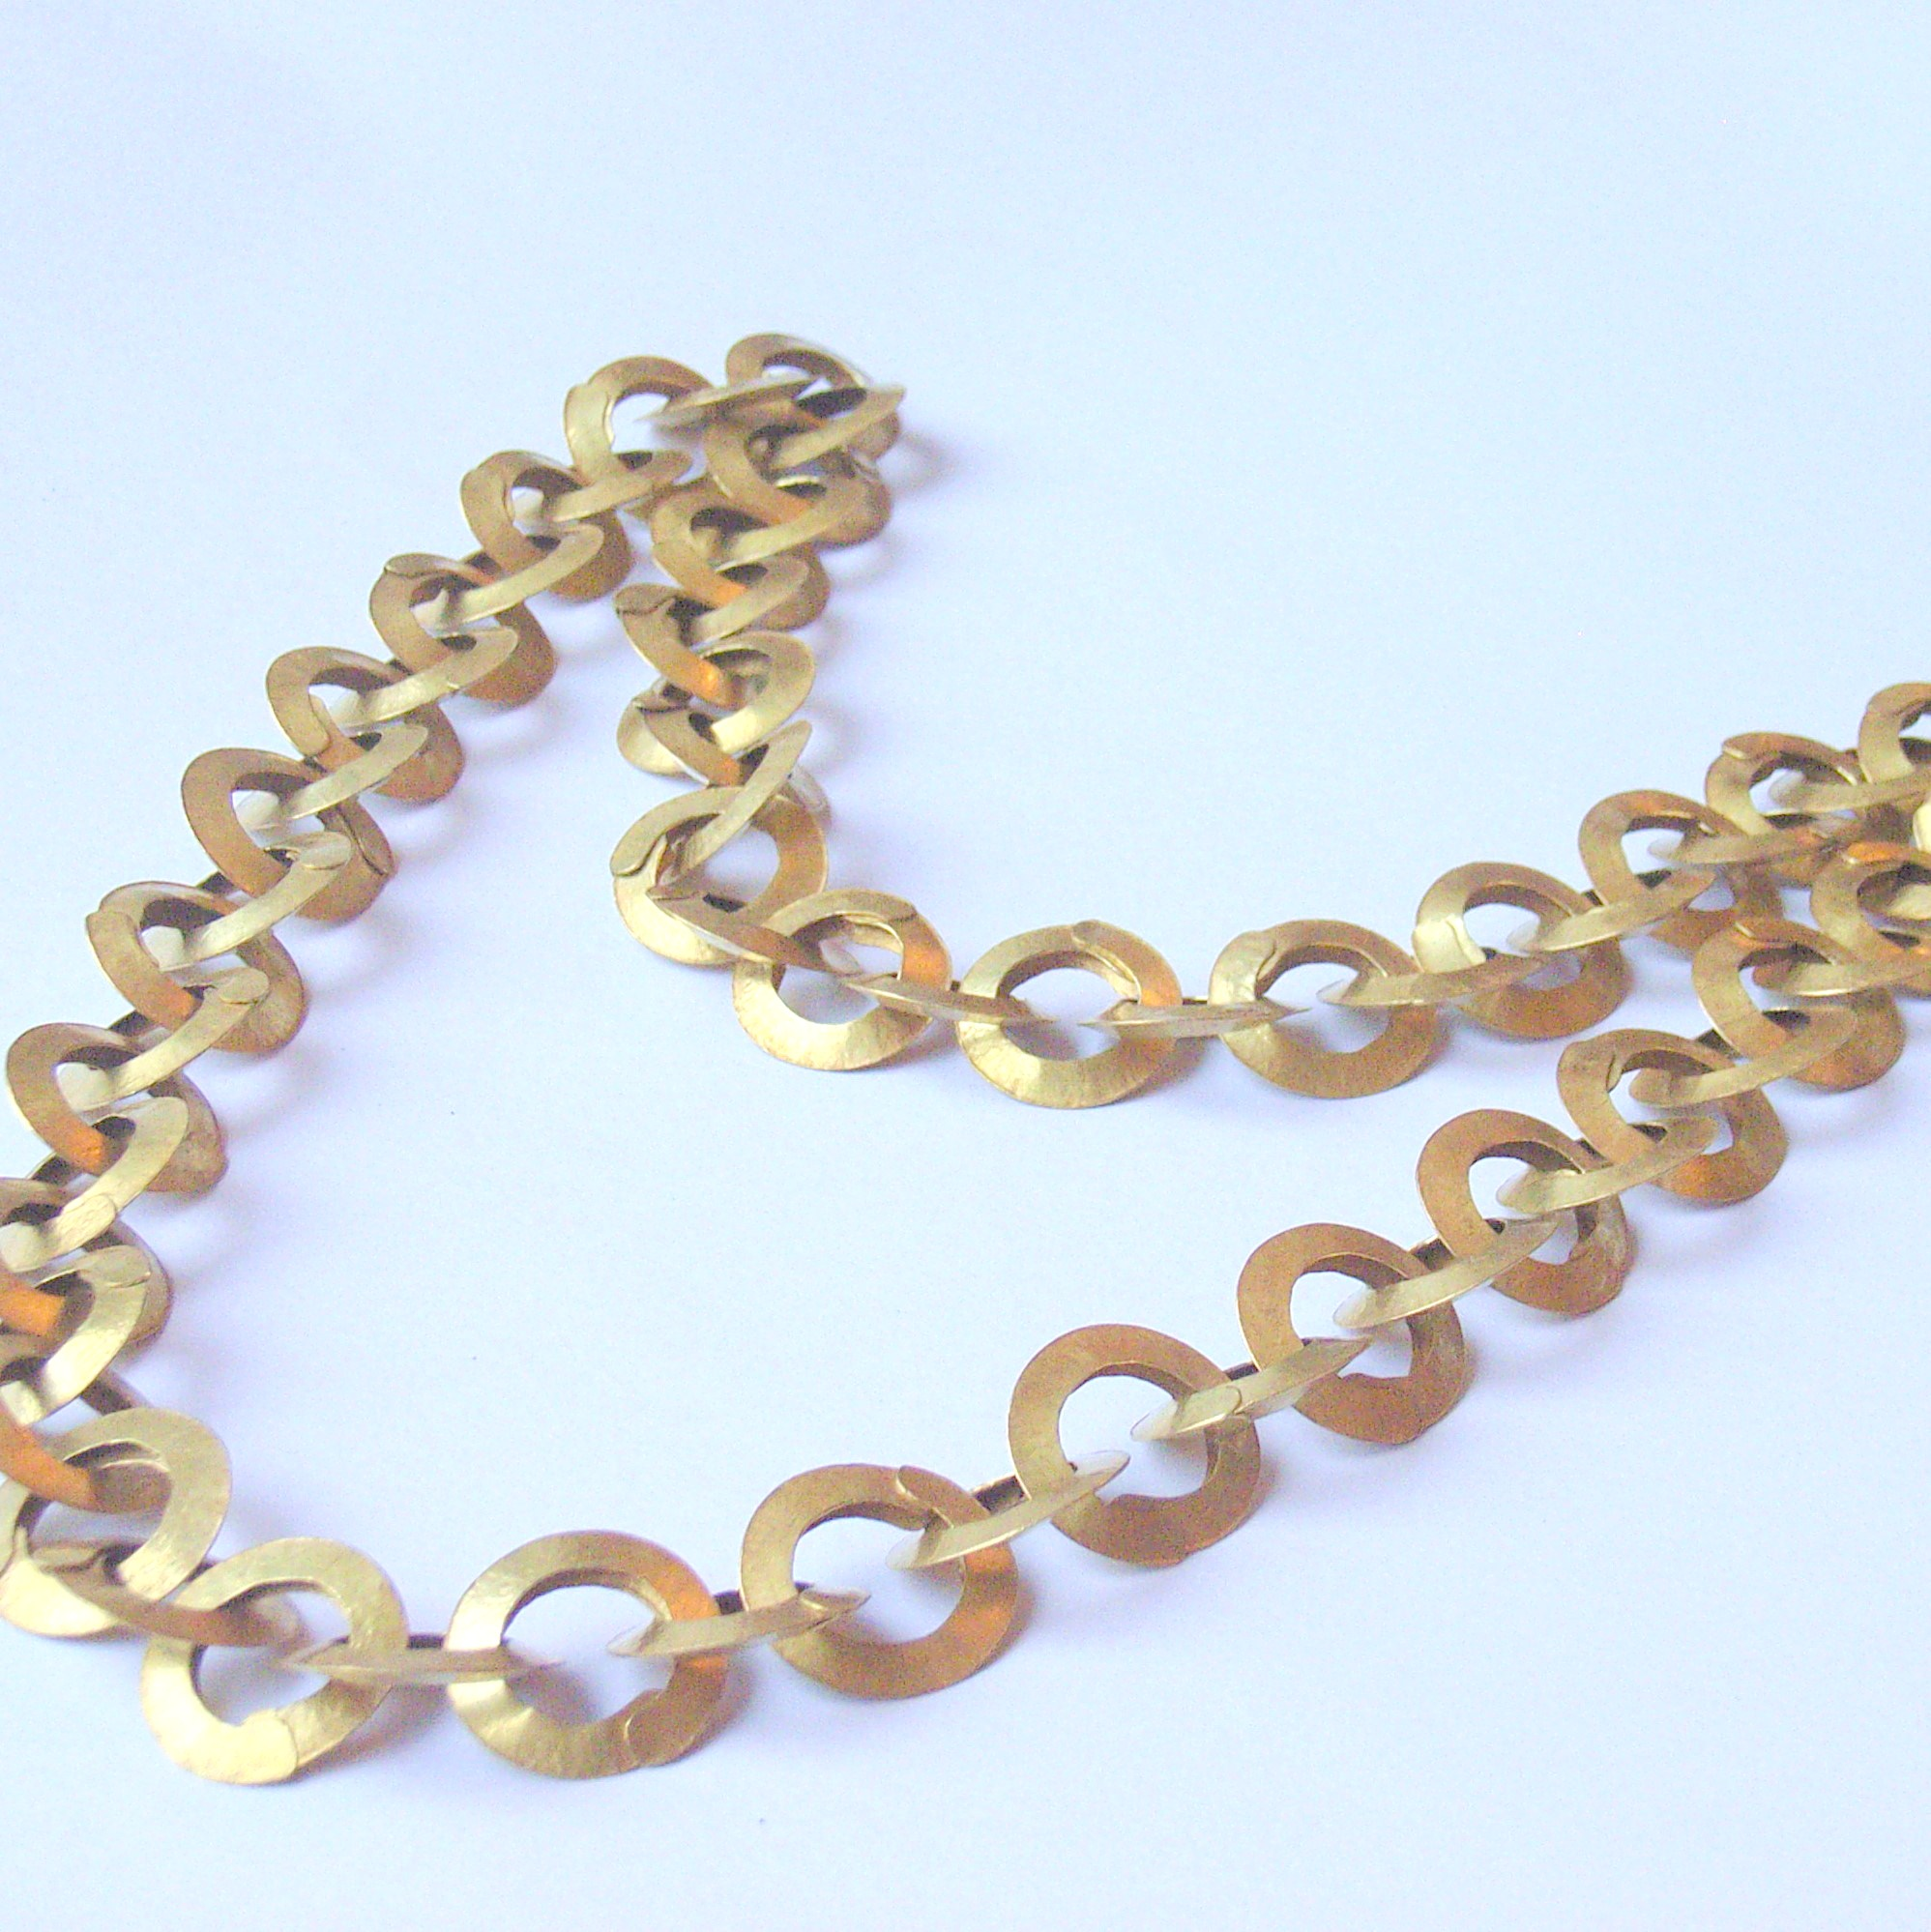 Forged Link Chains : Forged small link brass chain contemporary necklaces